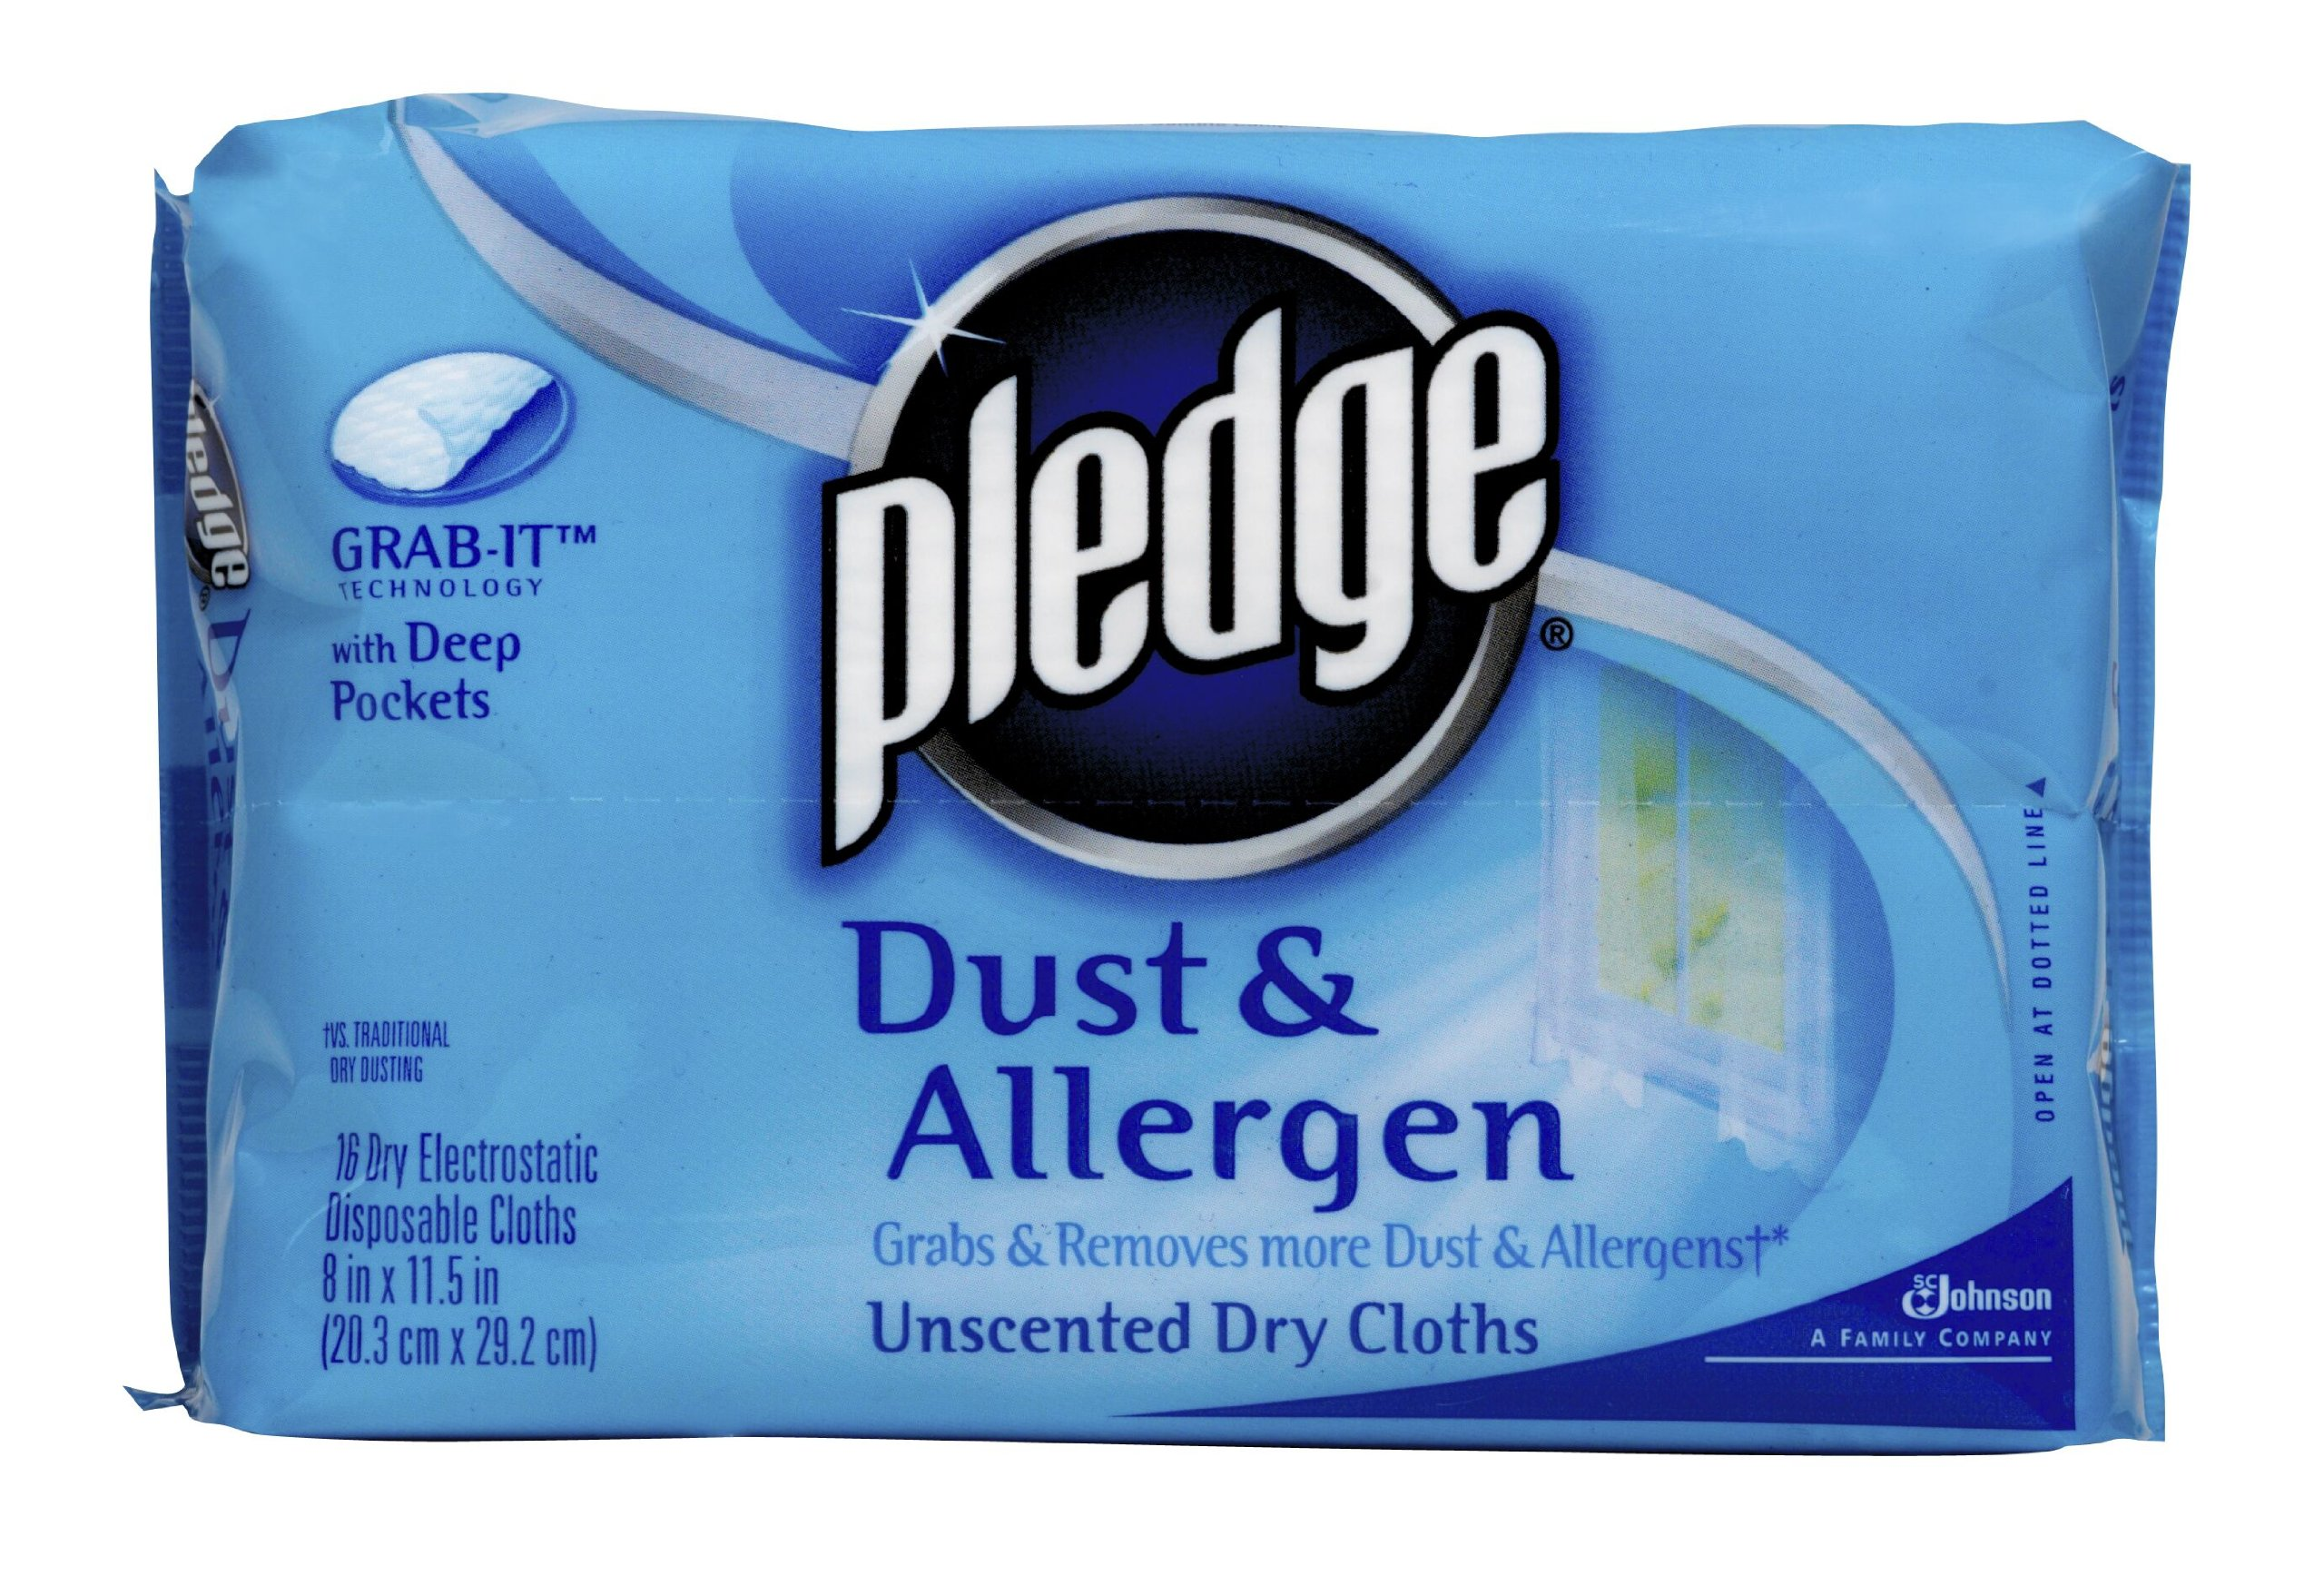 Pledge Grab-It Refill, Unscented, Dust & Allergen, 16-Count (Pack of 6)